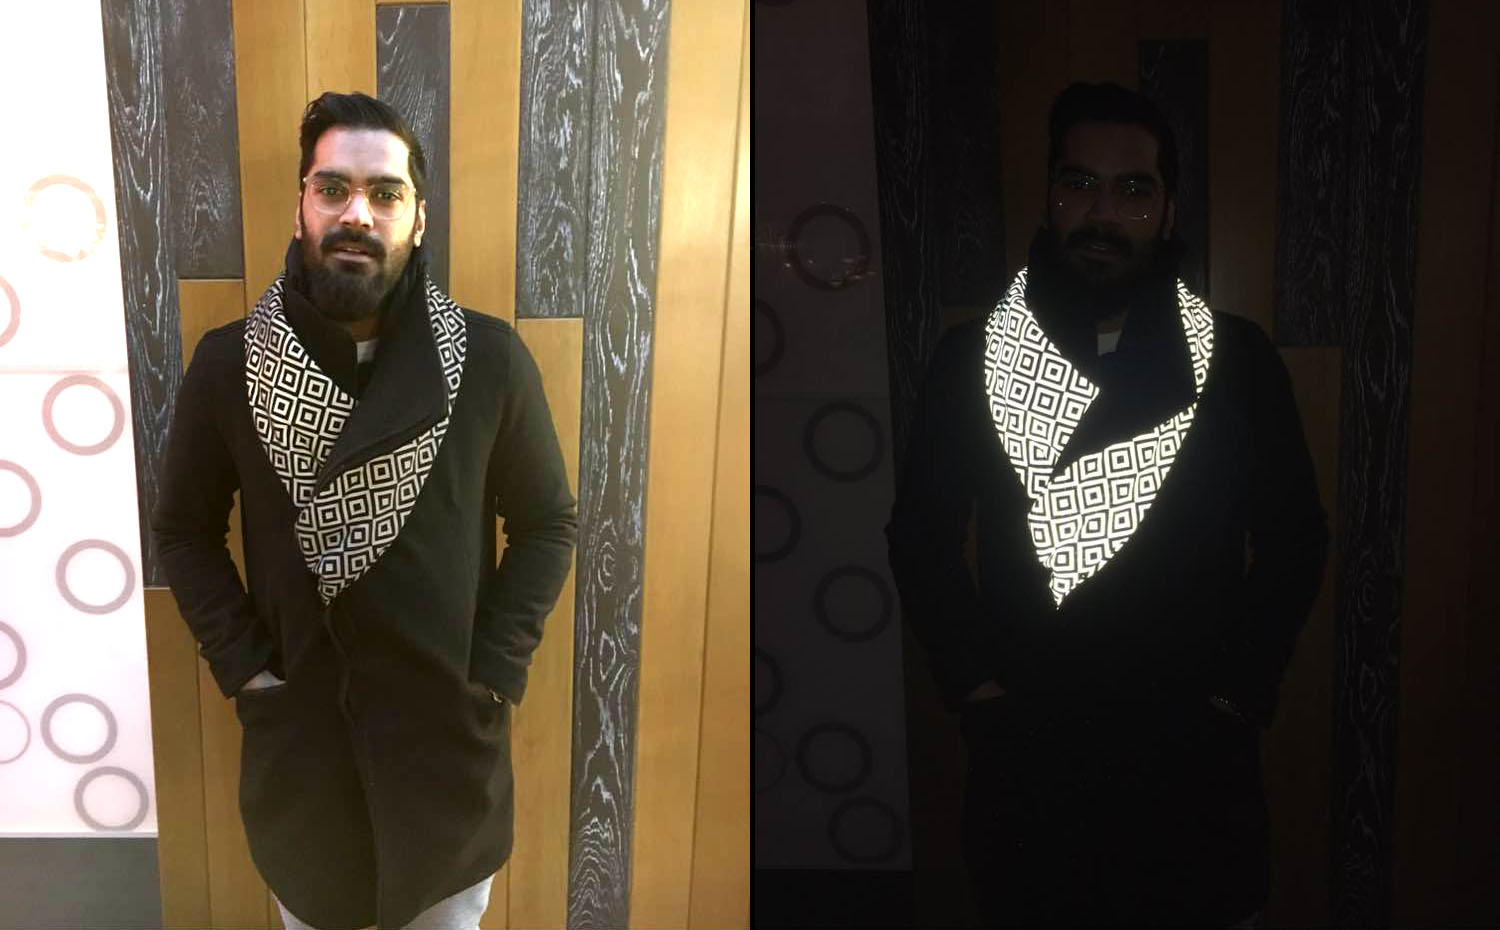 Saif Siddiqui wears the ISHU